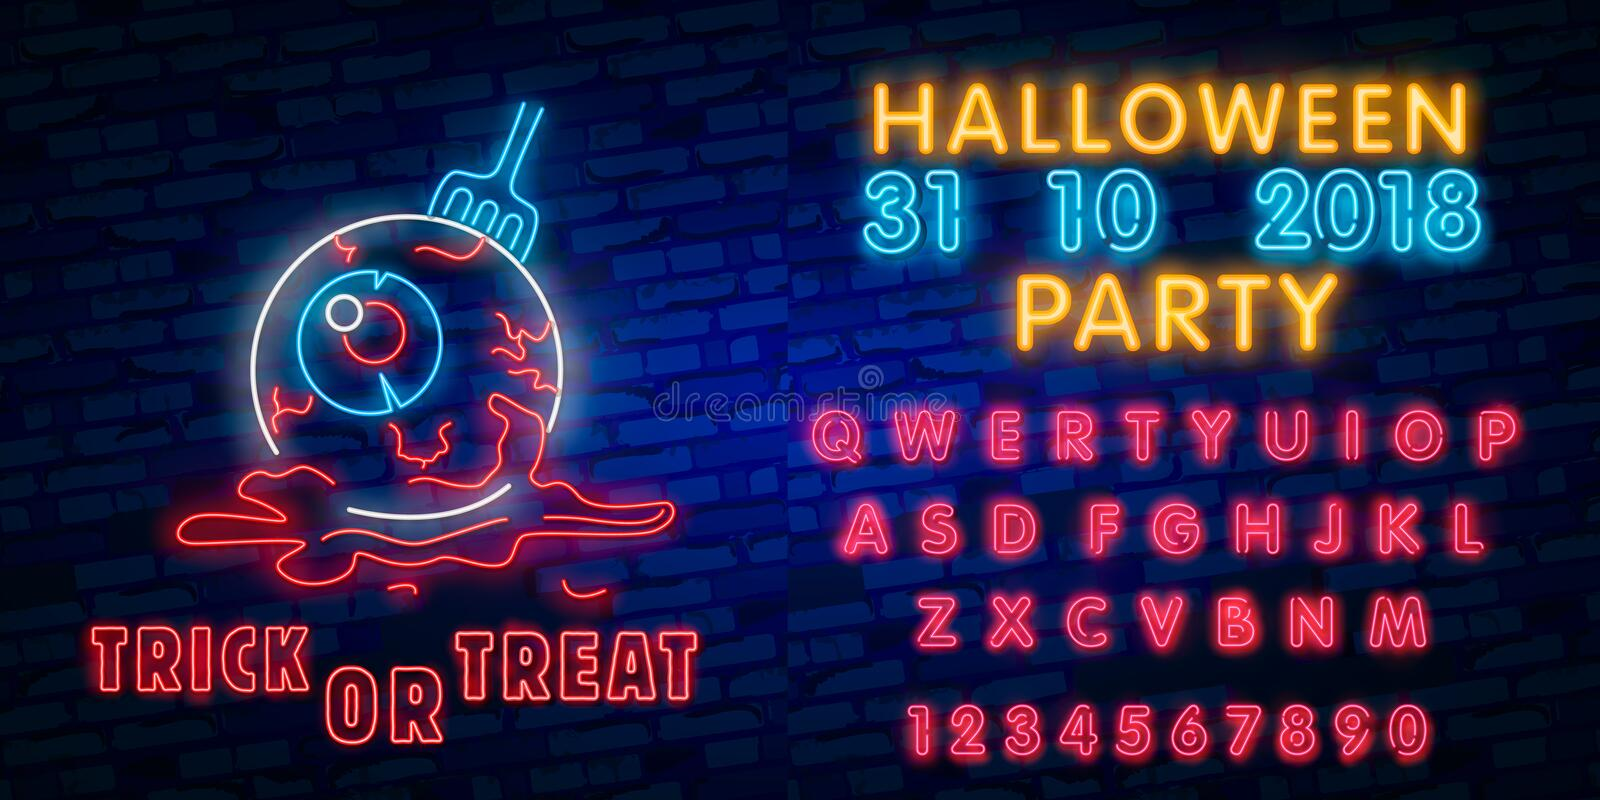 Halloween neon sign collection . Halloween Party Design template and web for banner, poster, greeting card, party invitation. Light banner vector illustration